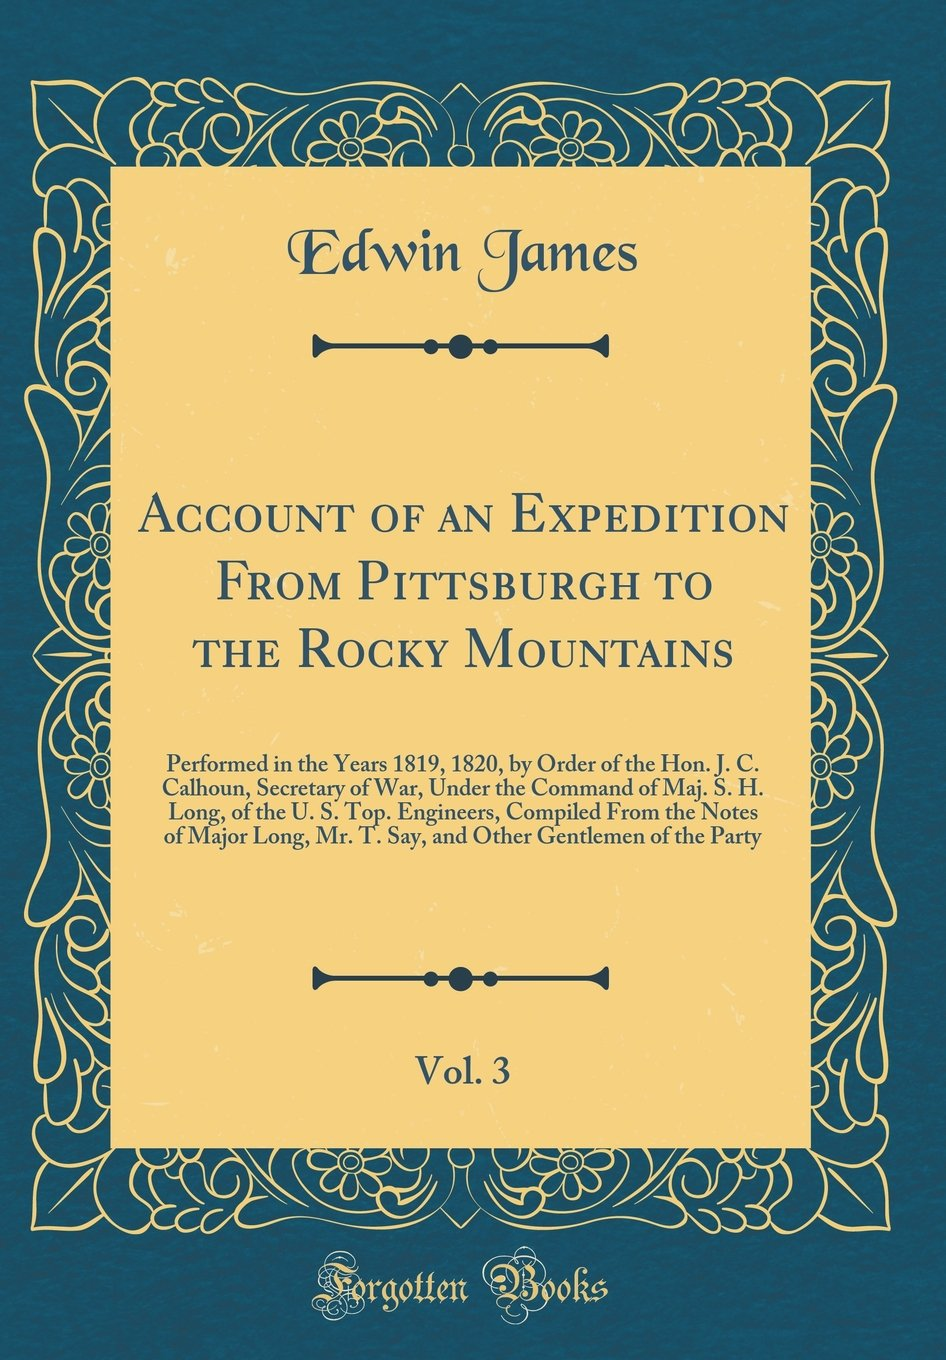 Account of an Expedition From Pittsburgh to the Rocky Mountains, Vol. 3: Performed in the Years 1819, 1820, by Order of the Hon. J. C. Calhoun. S. Top. Engineers, Compiled From the Notes of